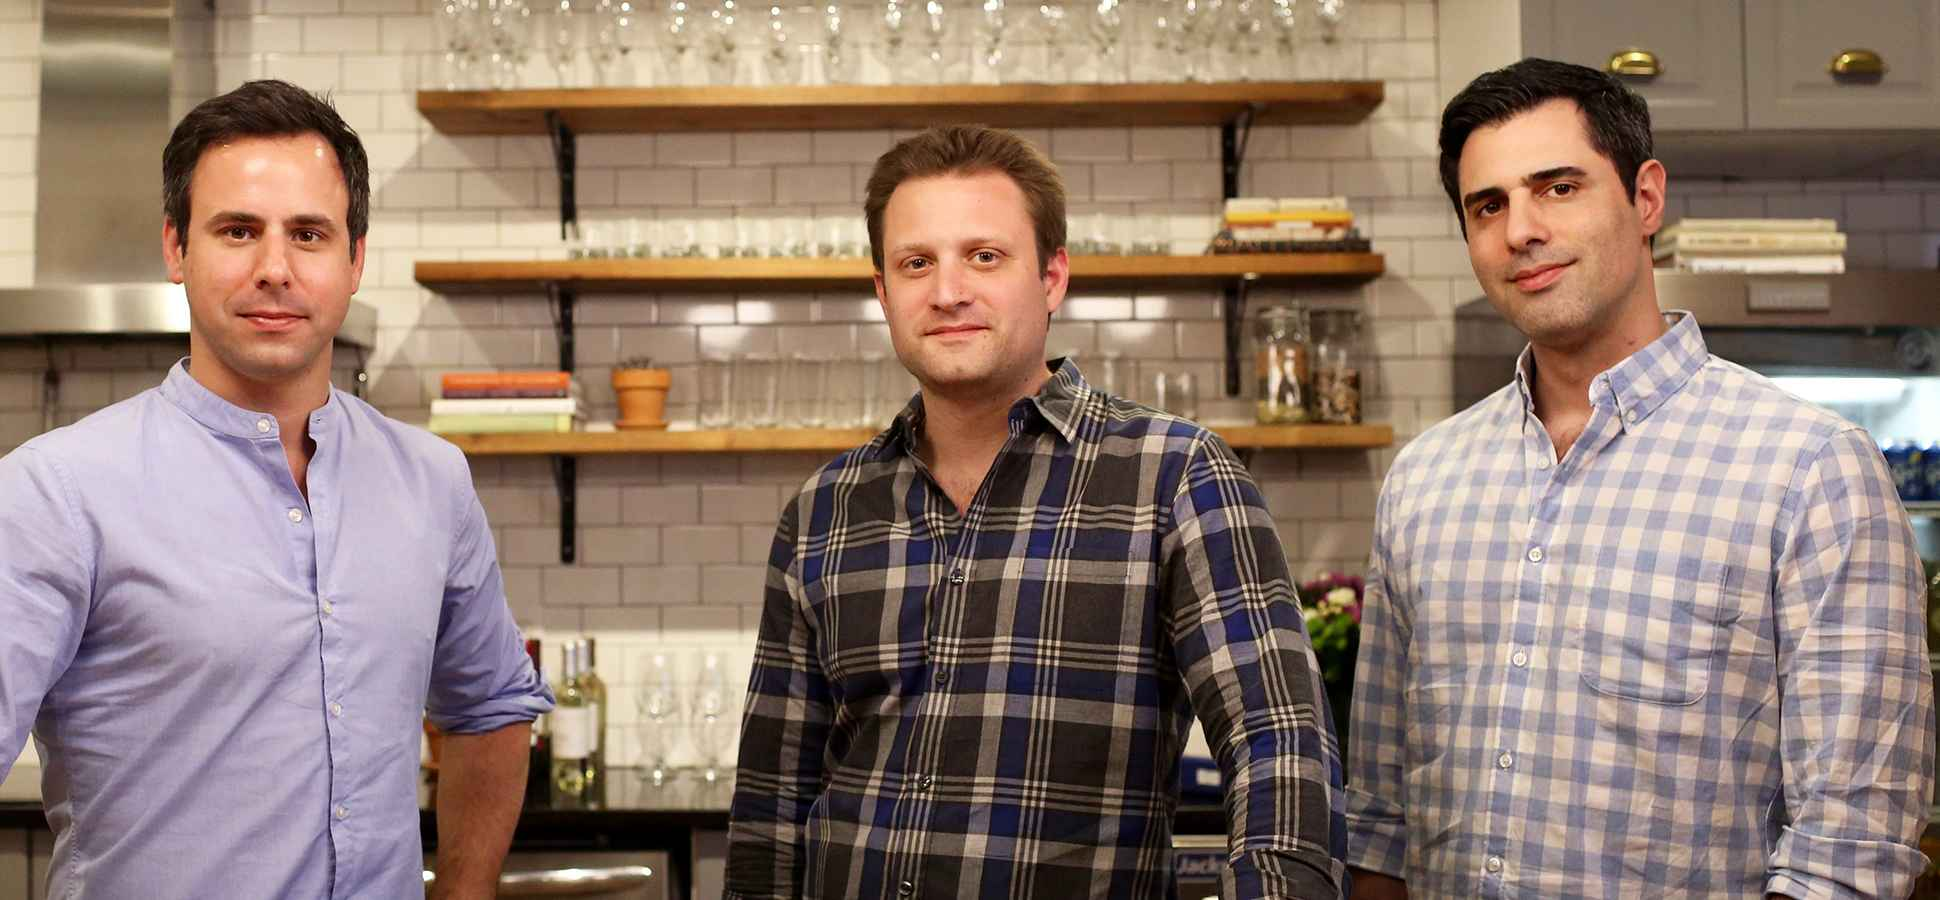 Blue apron going public - Blue Apron Files To Go Public But Don T Expect It To Be Profitable Anytime Soon Inc Com